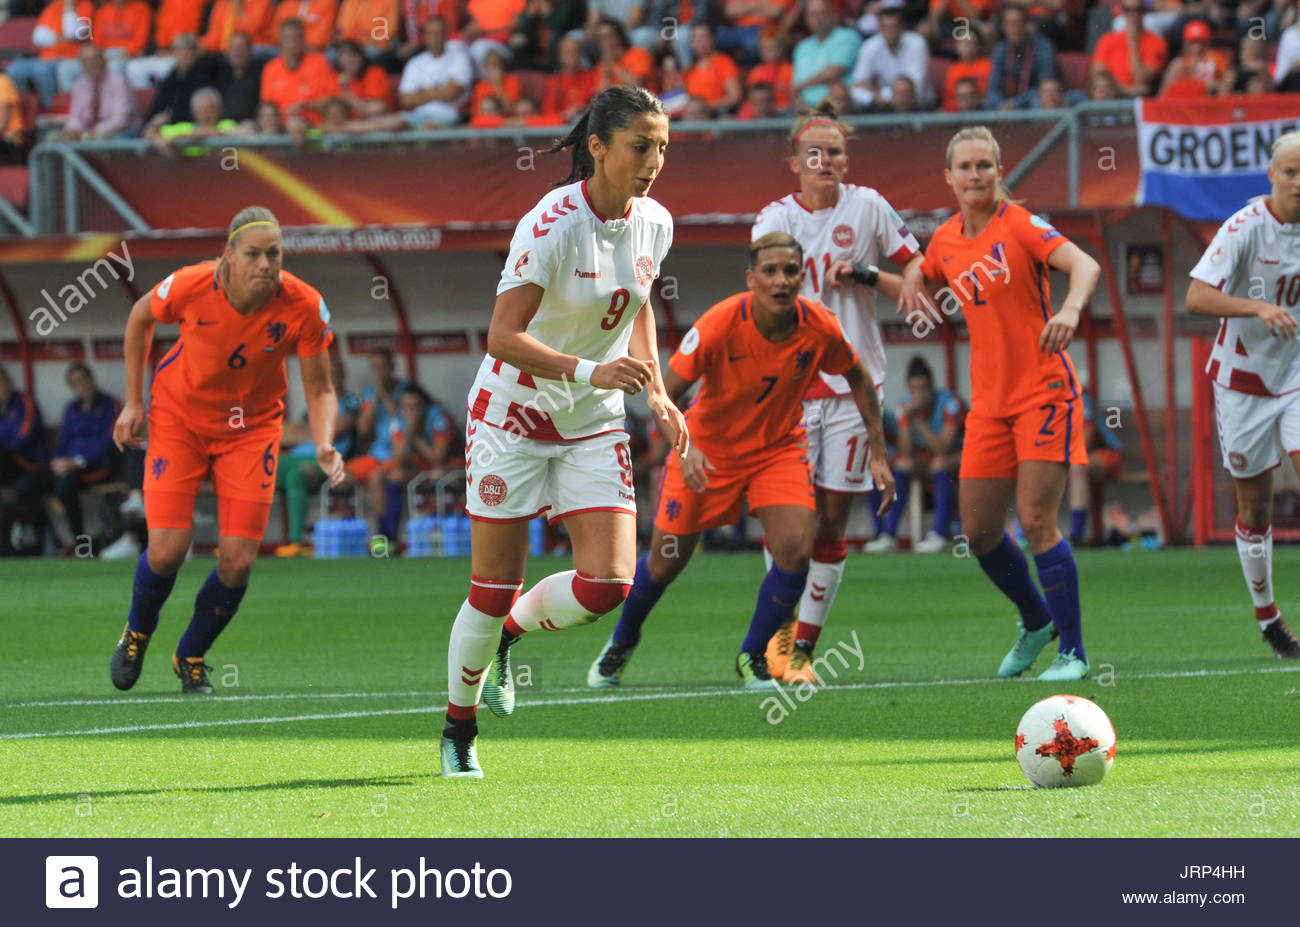 enschede-the-netherlands-6th-august-2017uefa-womens-european-final-JRP4HH.jpg